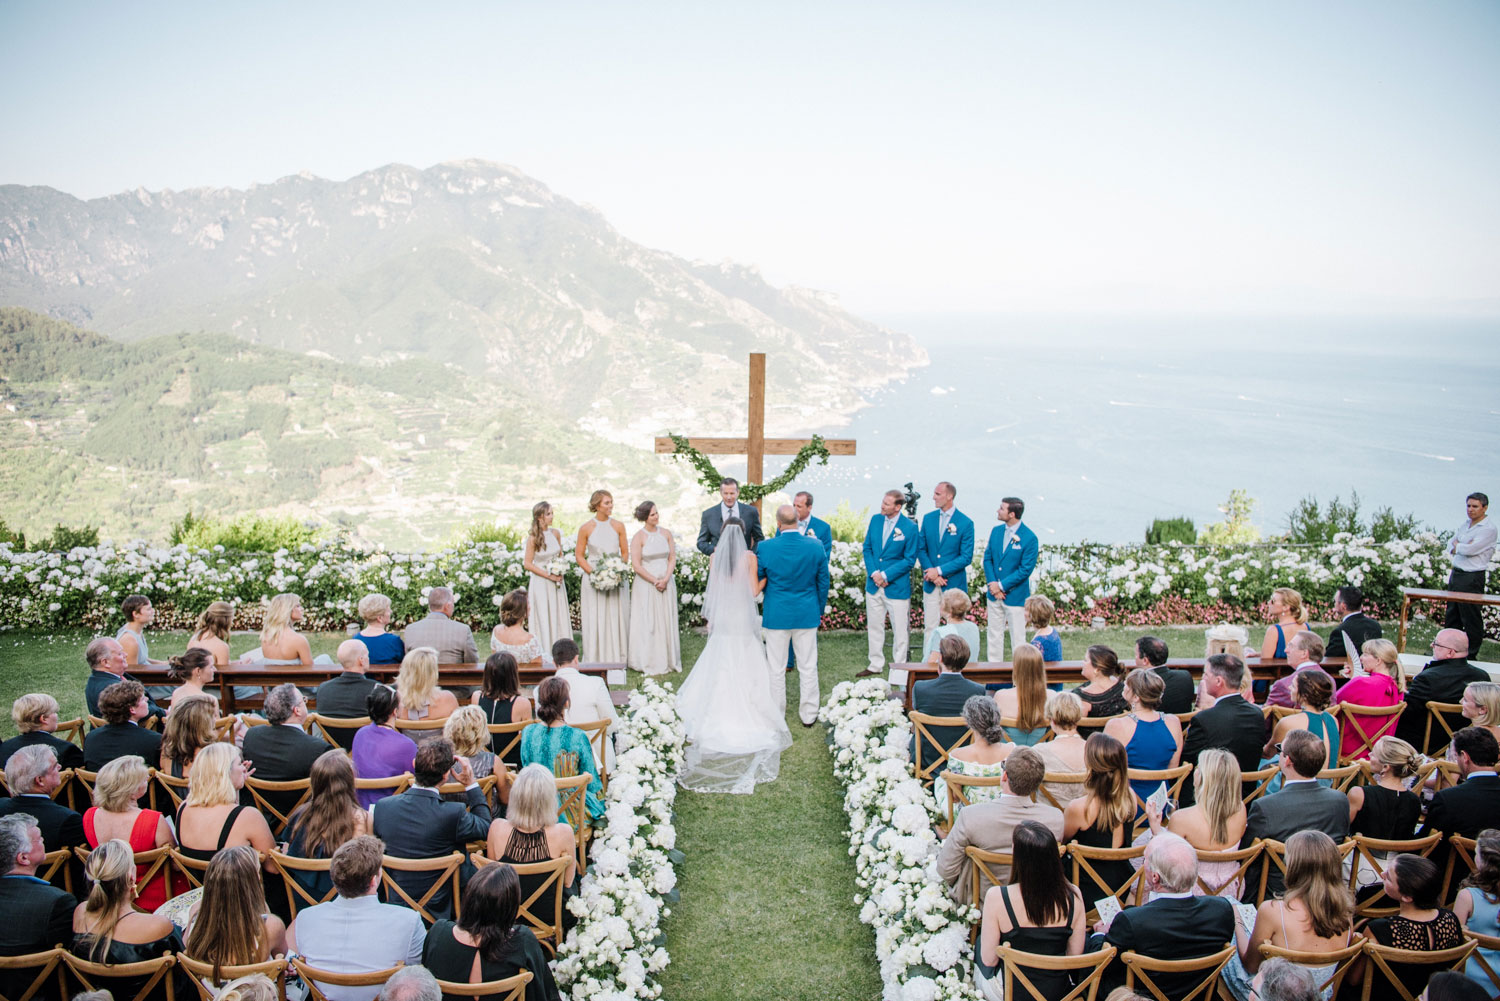 Outdoor wedding ceremony on bluff in italy amalfi coast coastal view